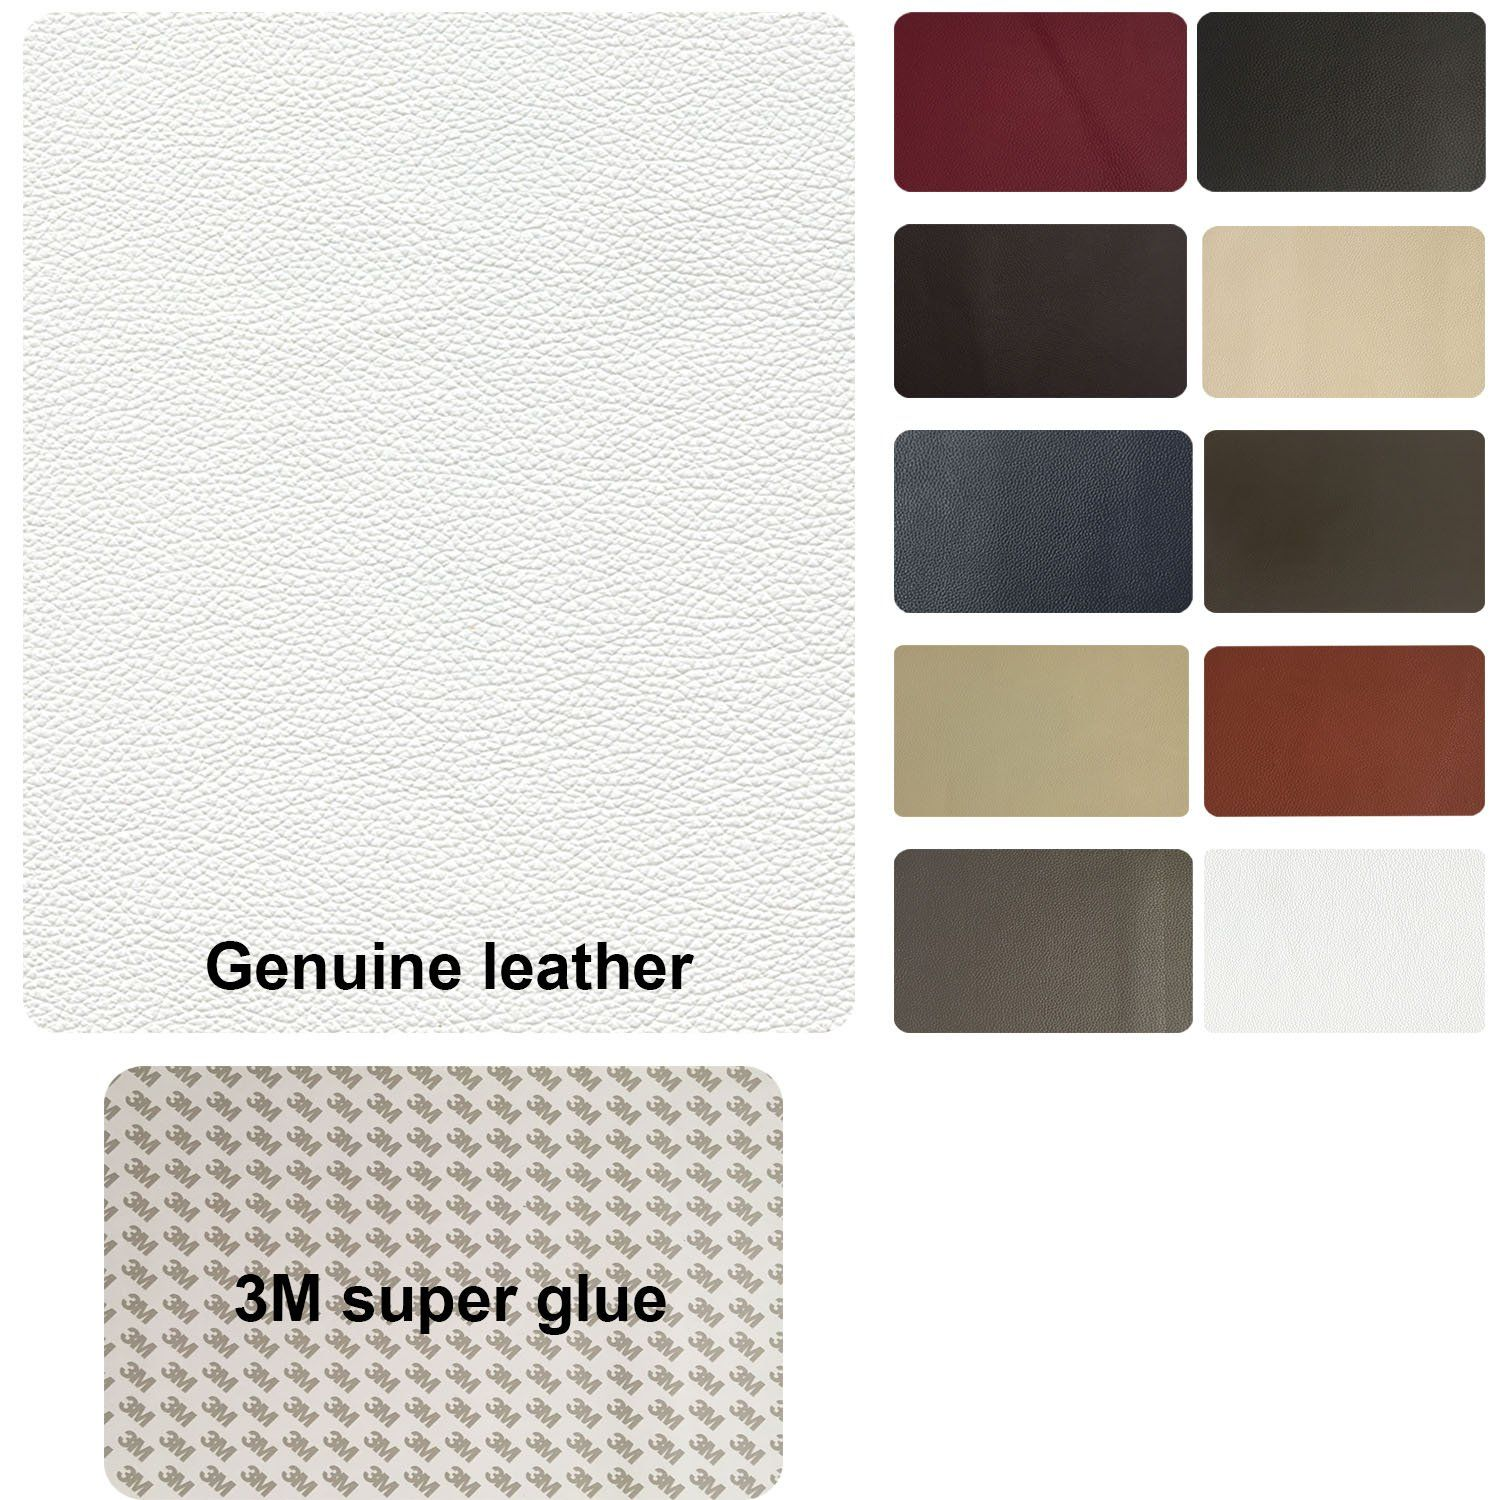 Genuine Leather Repair Patch 8 X 11 Inches Leather Repair Super Glue Patches